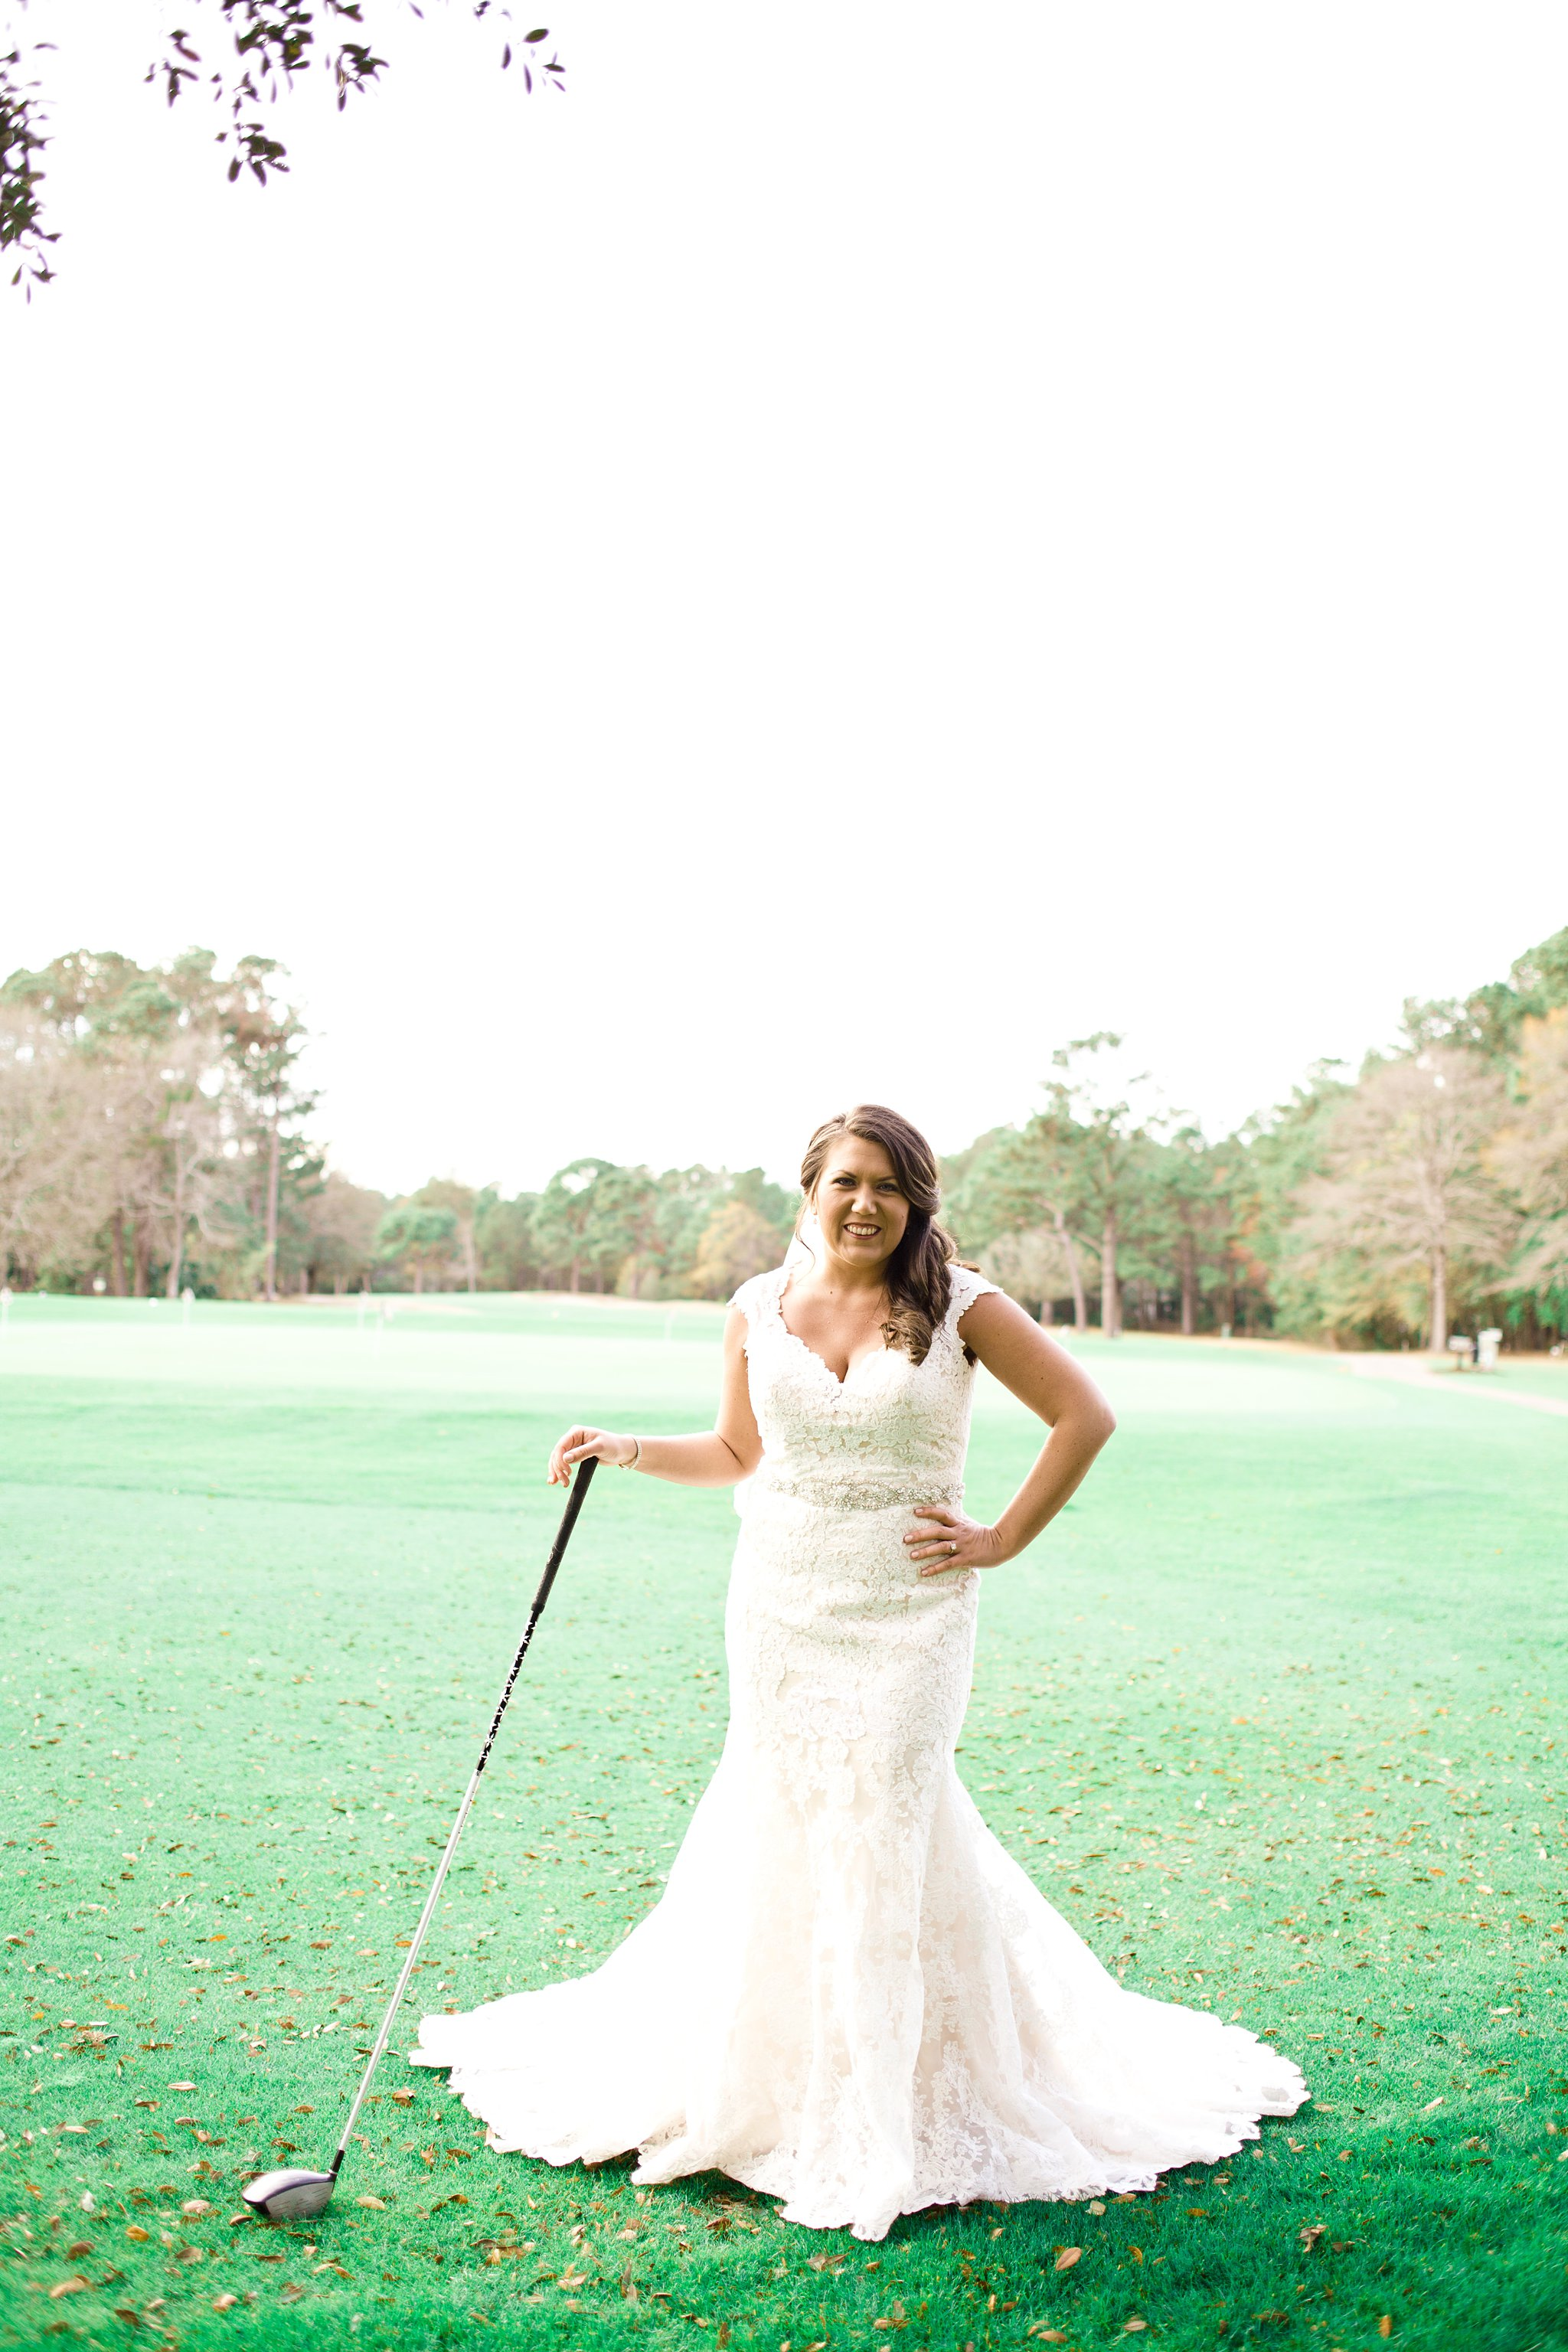 litchfield-golf-country-club-bridal-session-pawleys-island-sc-photos_0134.jpg